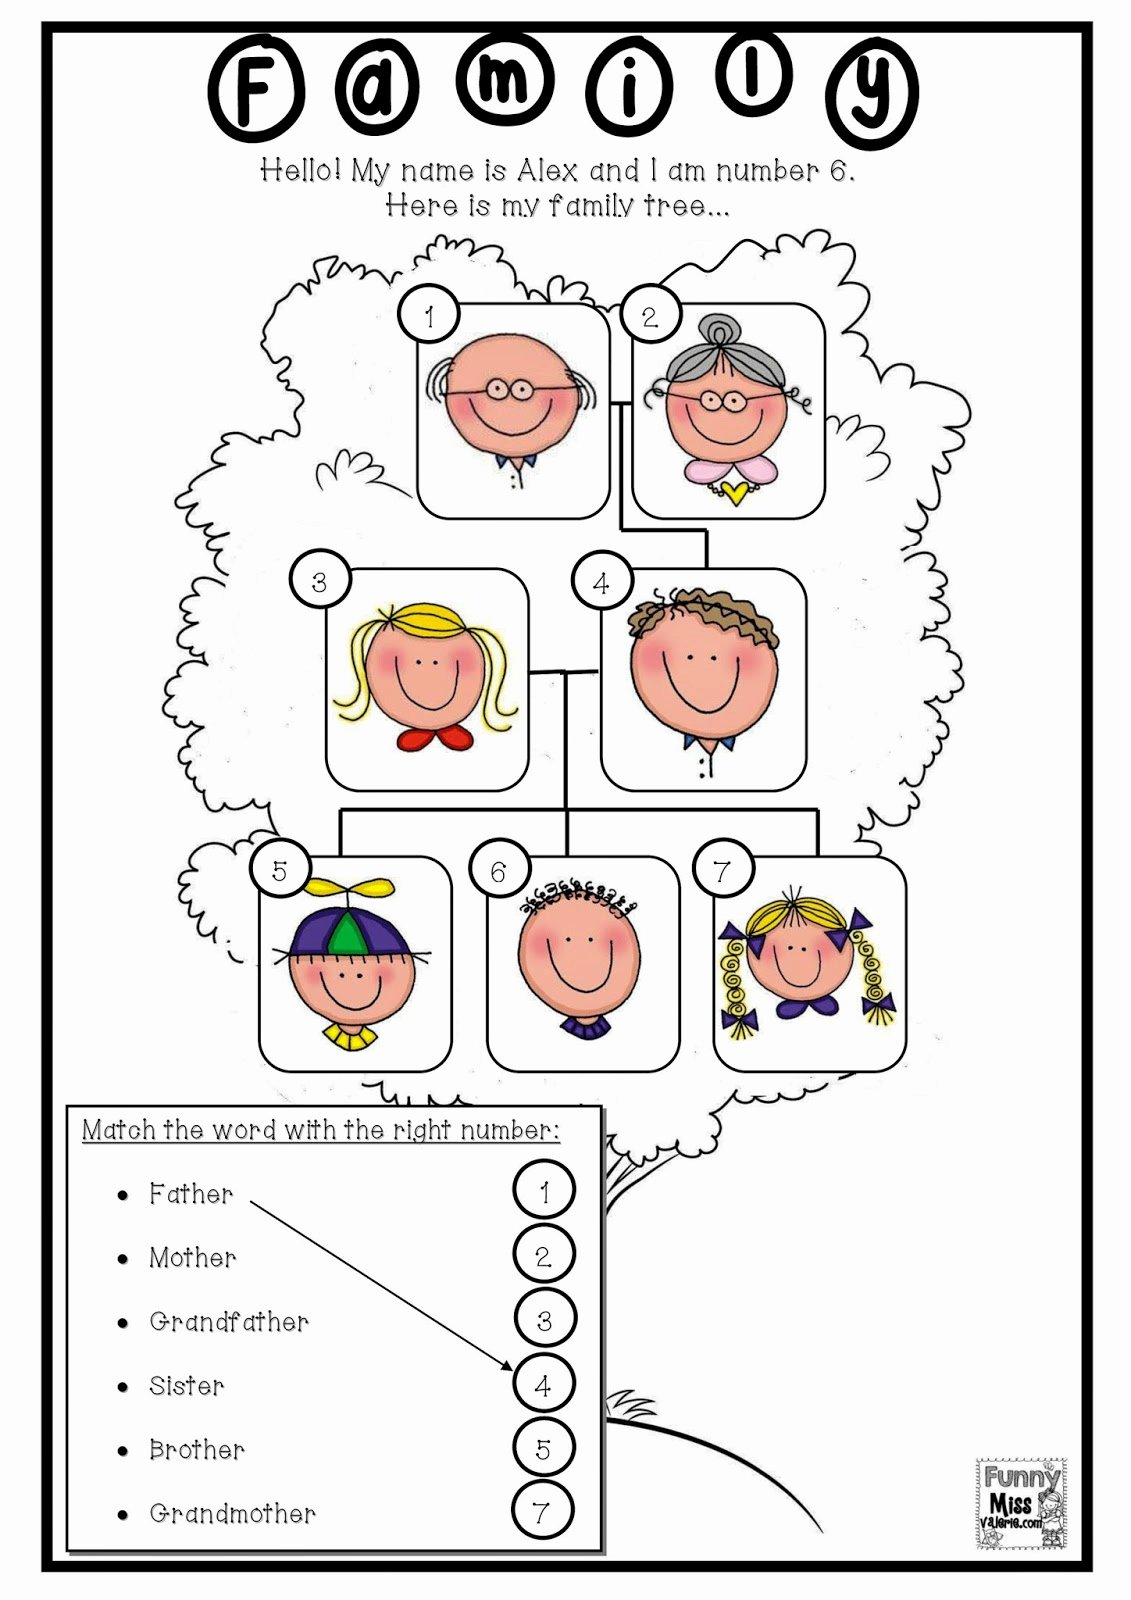 40 Family Tree Worksheet Printable